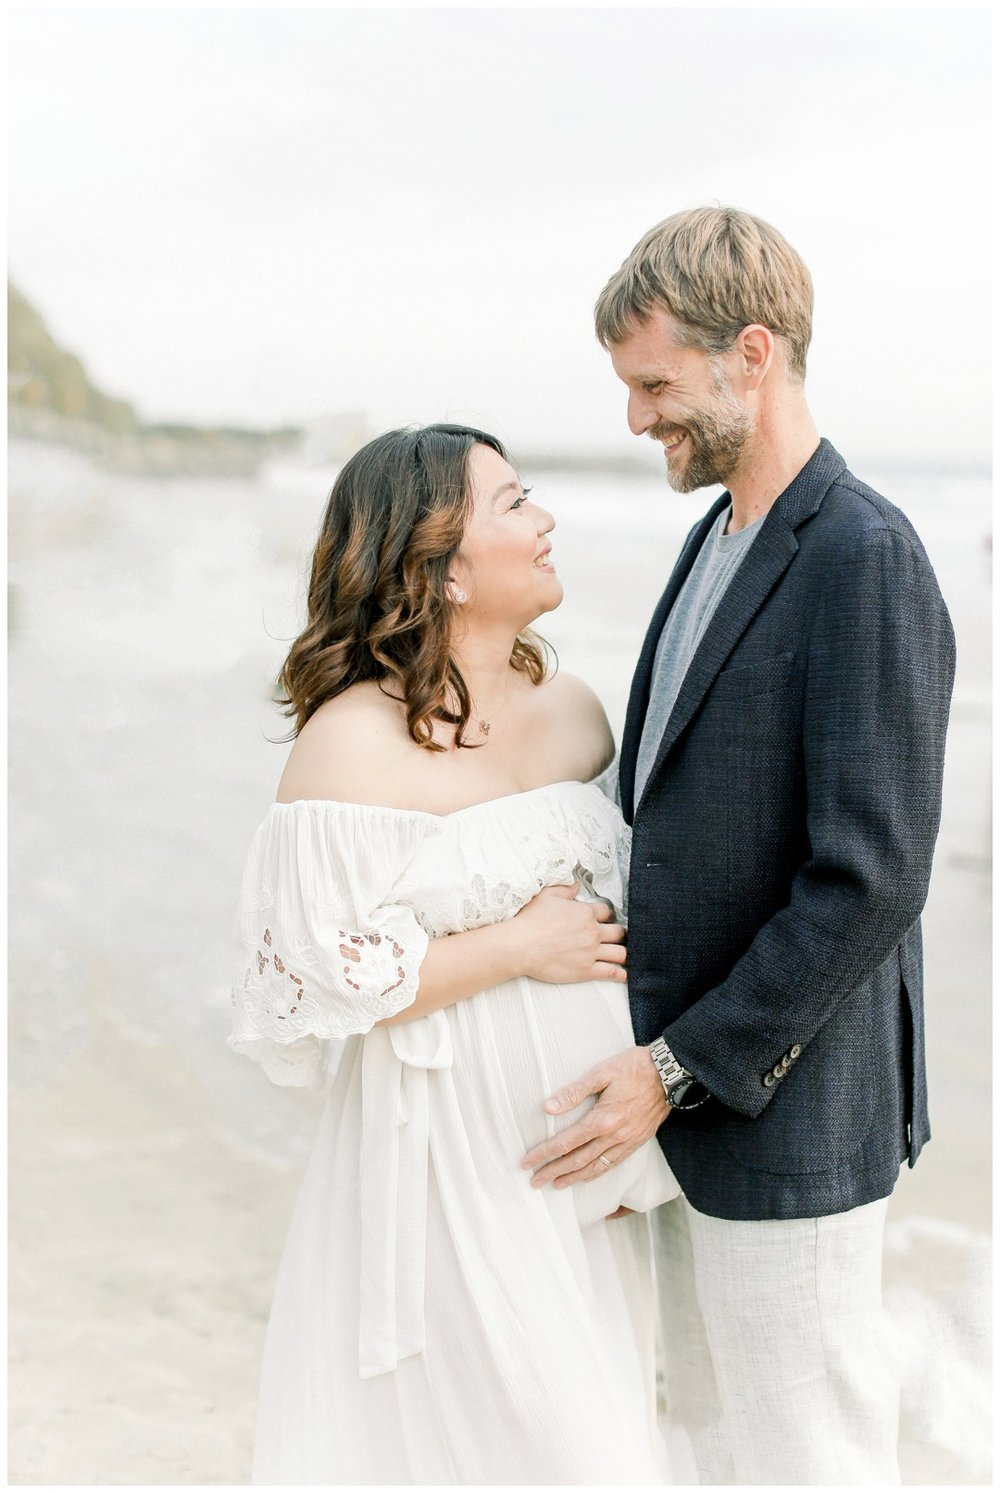 Newport_Beach_Maternity_Photographer_The_Koontz_Maternity_Session_Newport_Beach_Maternity_Photography_Orange_County_Photography_Cori_Kleckner_Photography_Orange_County_Beach_Photography_The_Ritz_Carlton_Laguna_Niguel_Resort_ Maternity_Session__1736.jpg